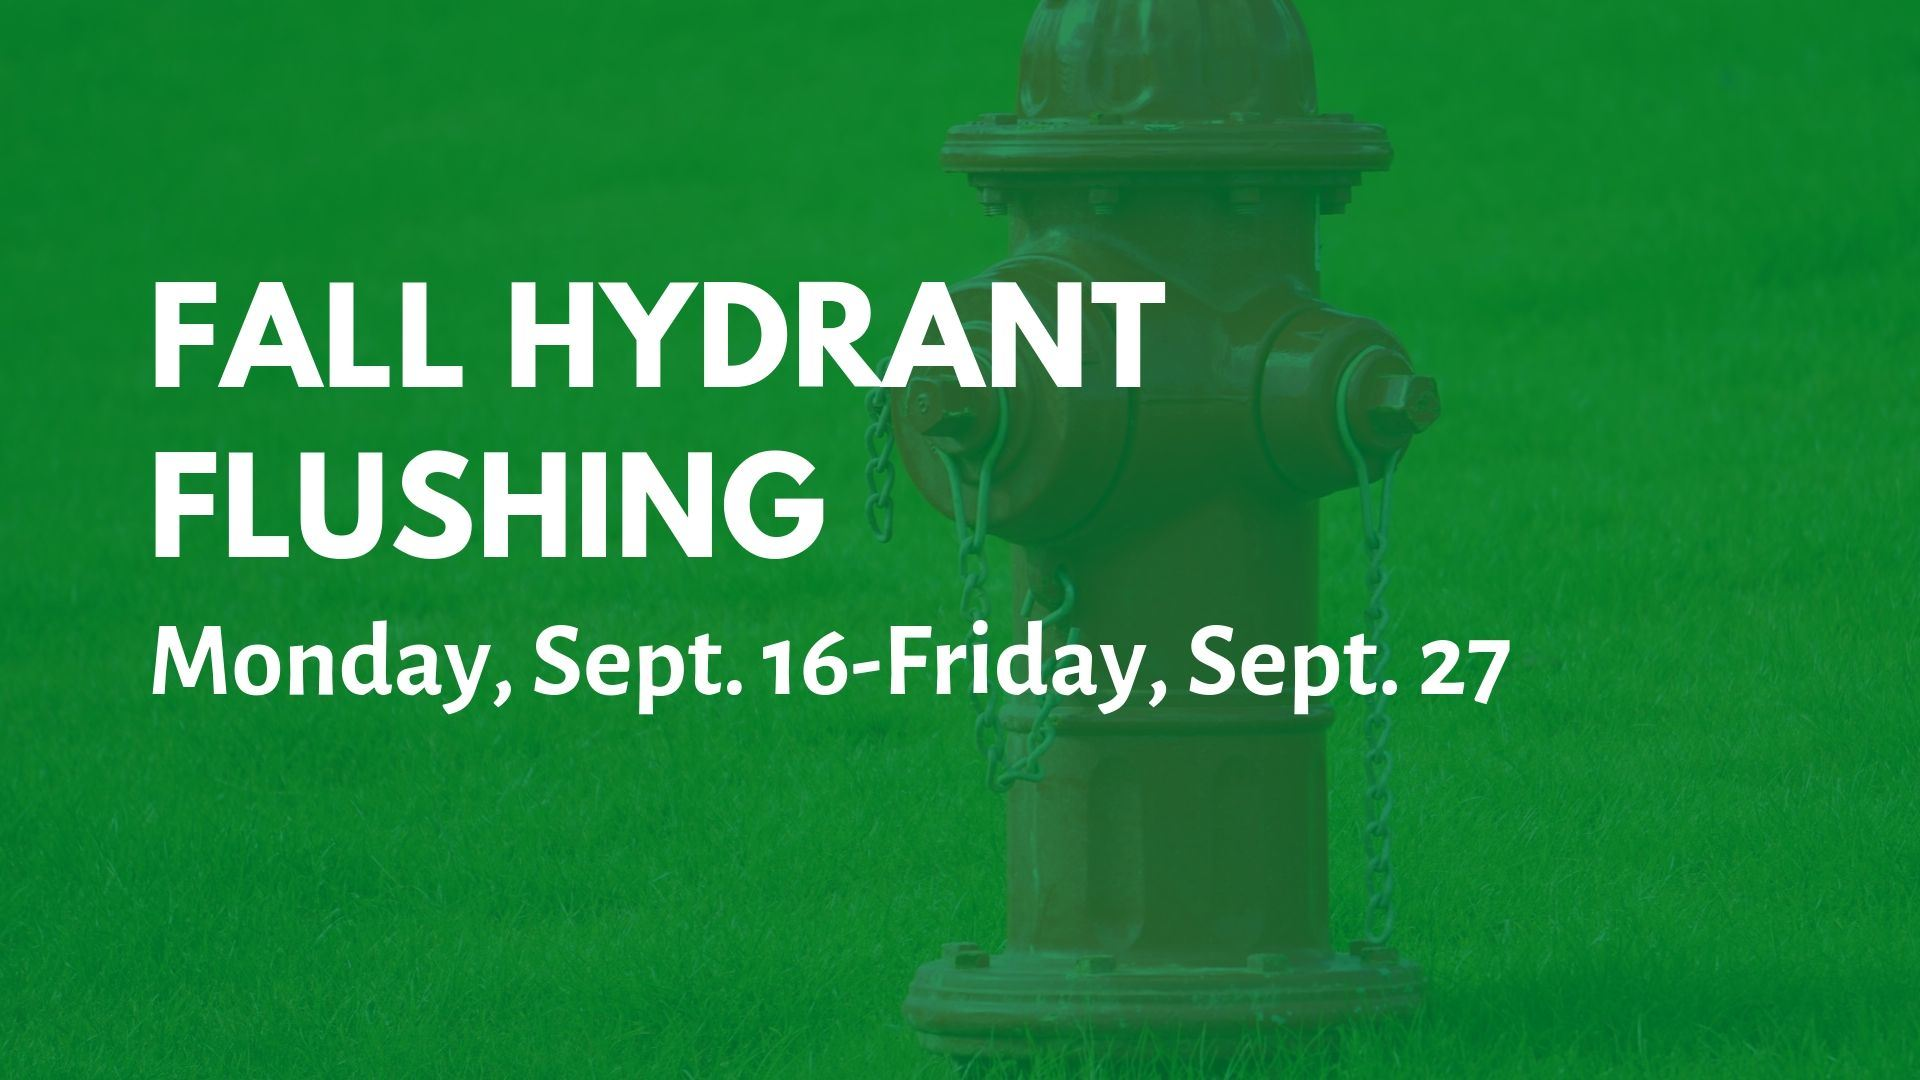 Fall Hydrant Flushing Graphic